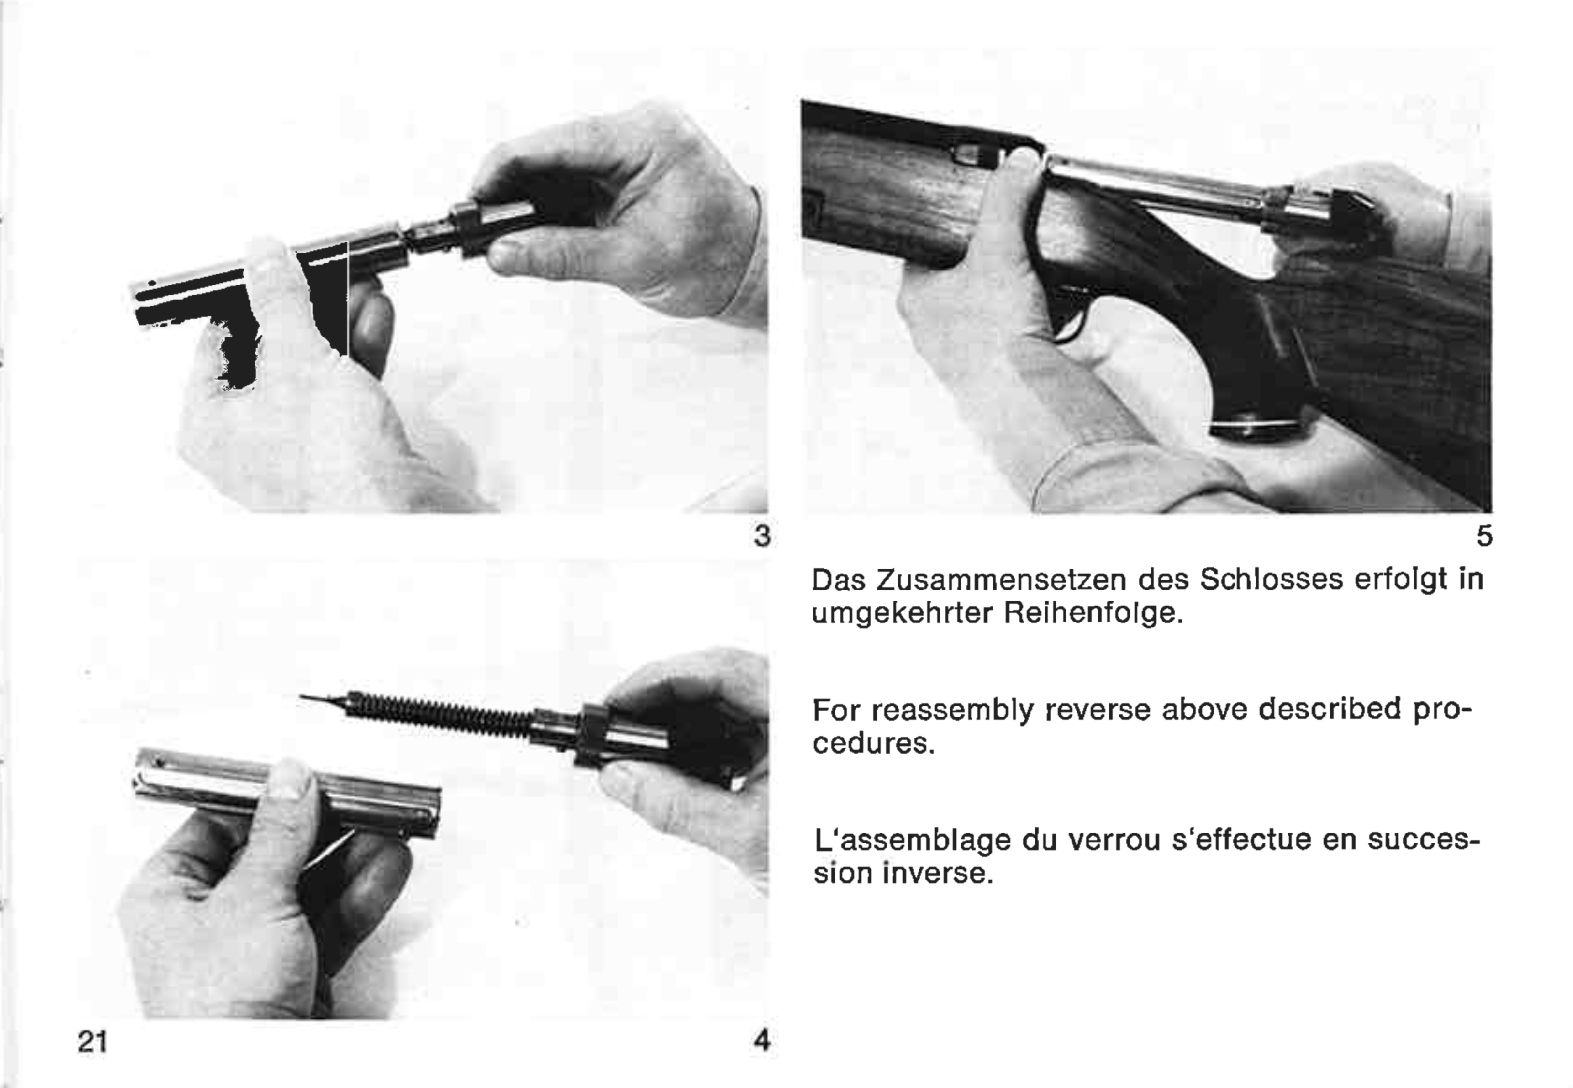 This picture from the Mauser 77 owners manual shows that the locking lugs are part of the bolt handle assembly, separate from the bolt body. (Picture courtesy Mauser).